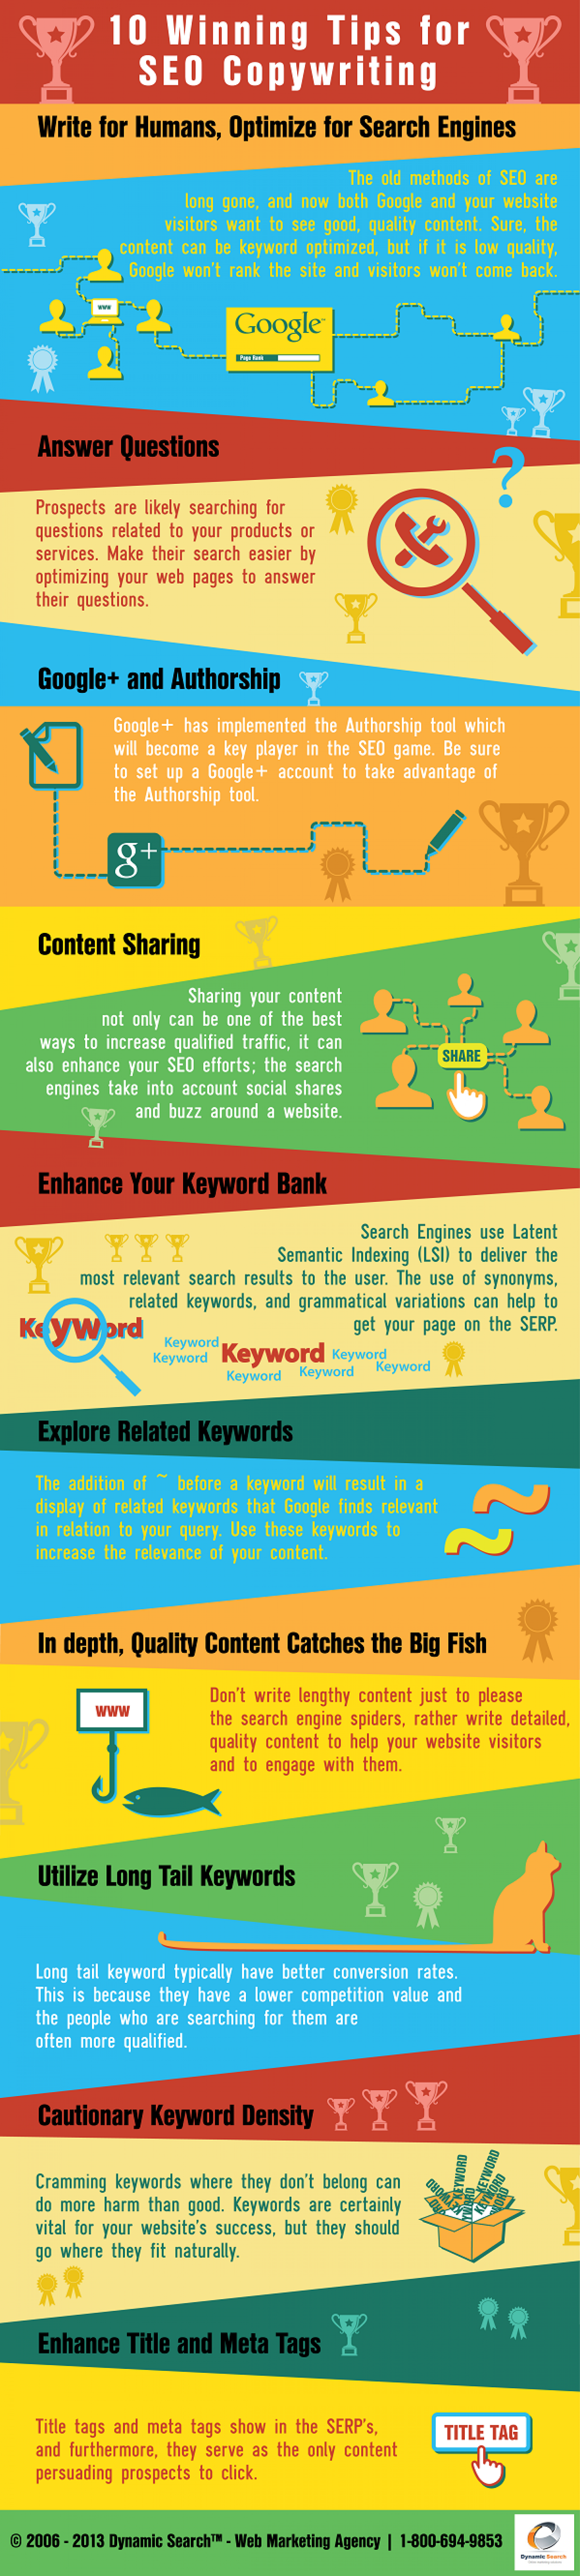 10 Winning Tips for SEO Copywriting Infographic